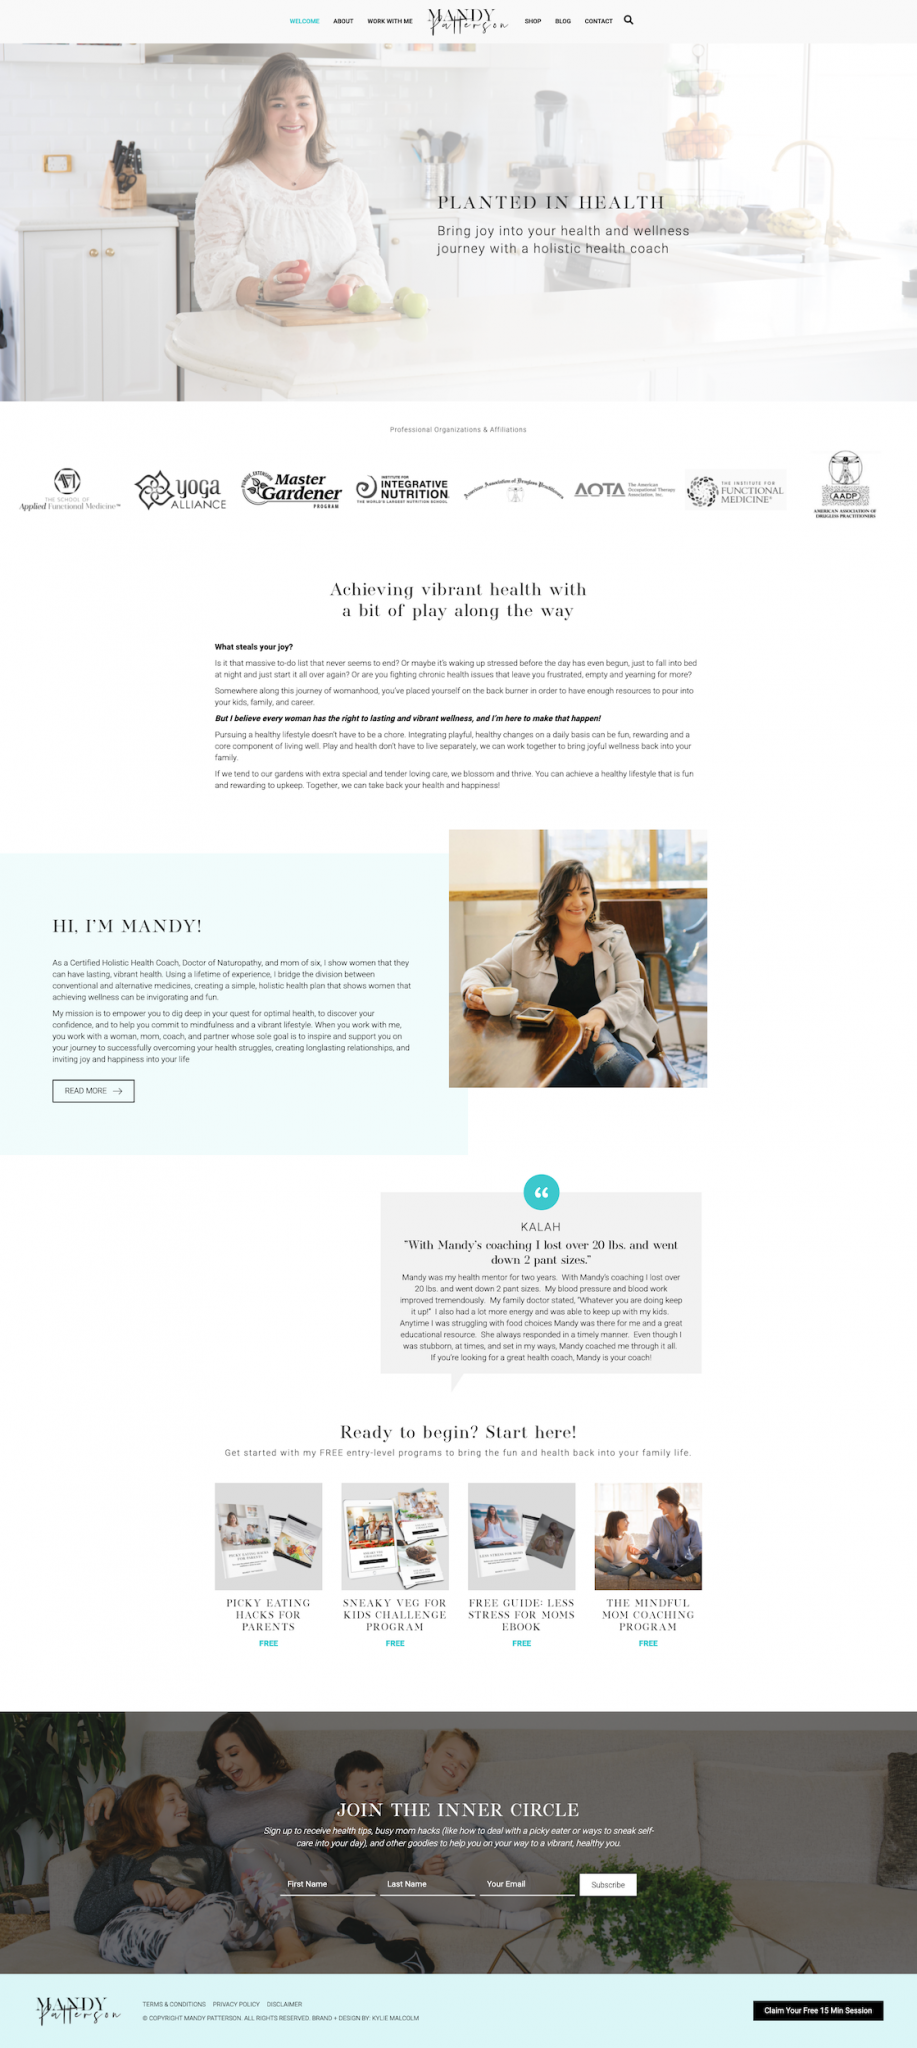 health coach naturopath website design by kylie malcolm